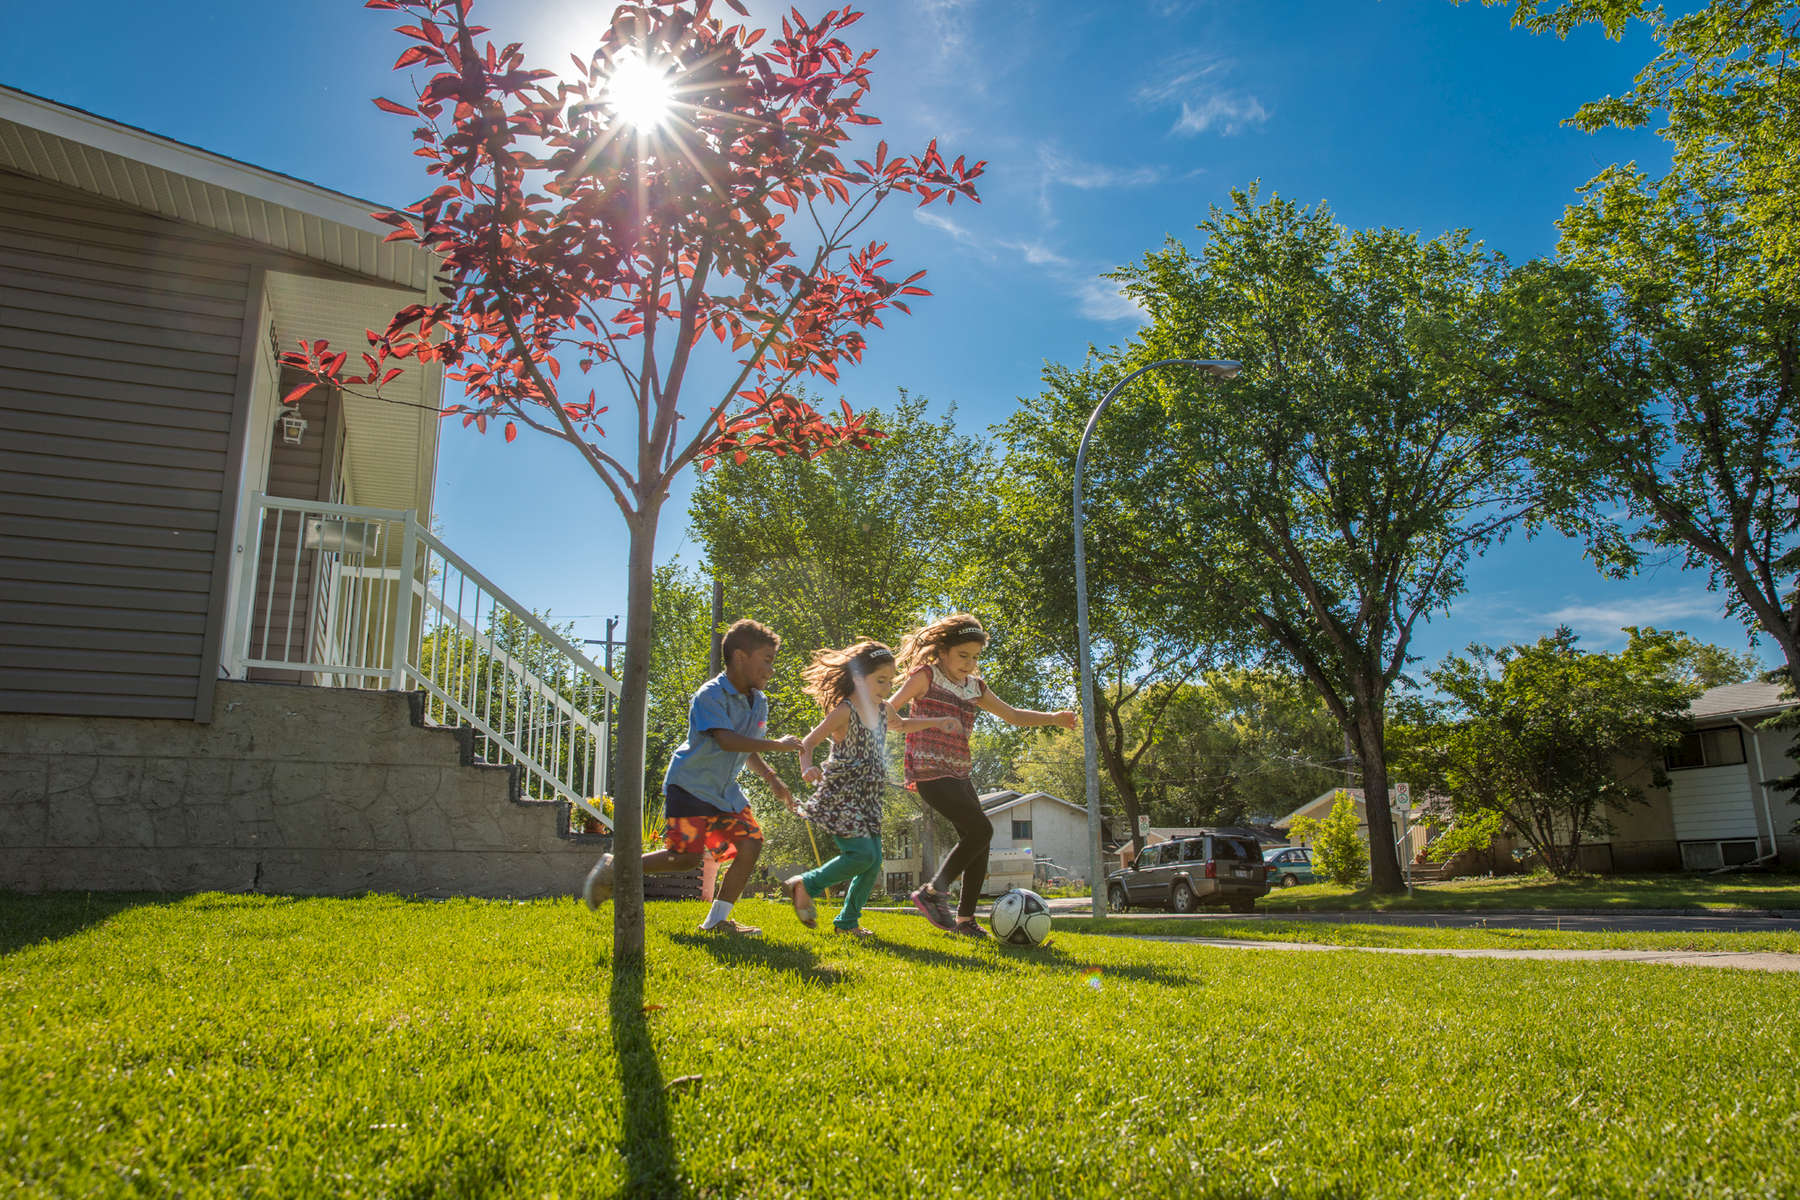 Siblings Ciera Nadeau (8, red shirt), Parnal Nadeau (6, blue shirt) and Ocean Nadeau (5, blue pants) play on the lawn in front of their family's Habitat home.© Habitat for Humanity International/Ezra Millstein